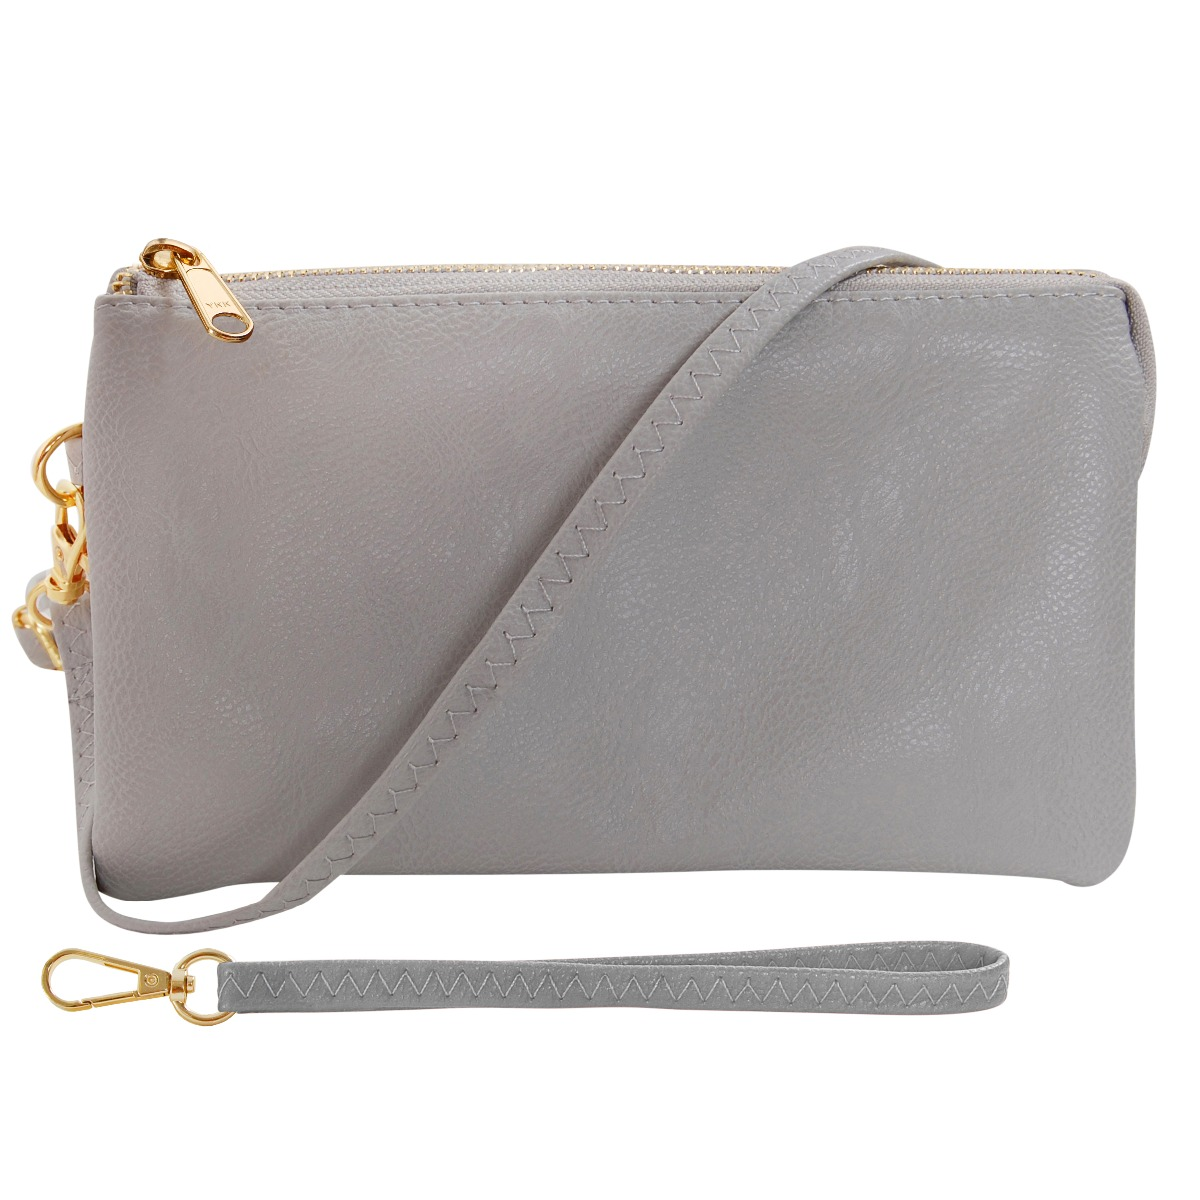 Includes Humble Chic Vegan Leather Small Crossbody Bag Or Wristlet Clutch Purse